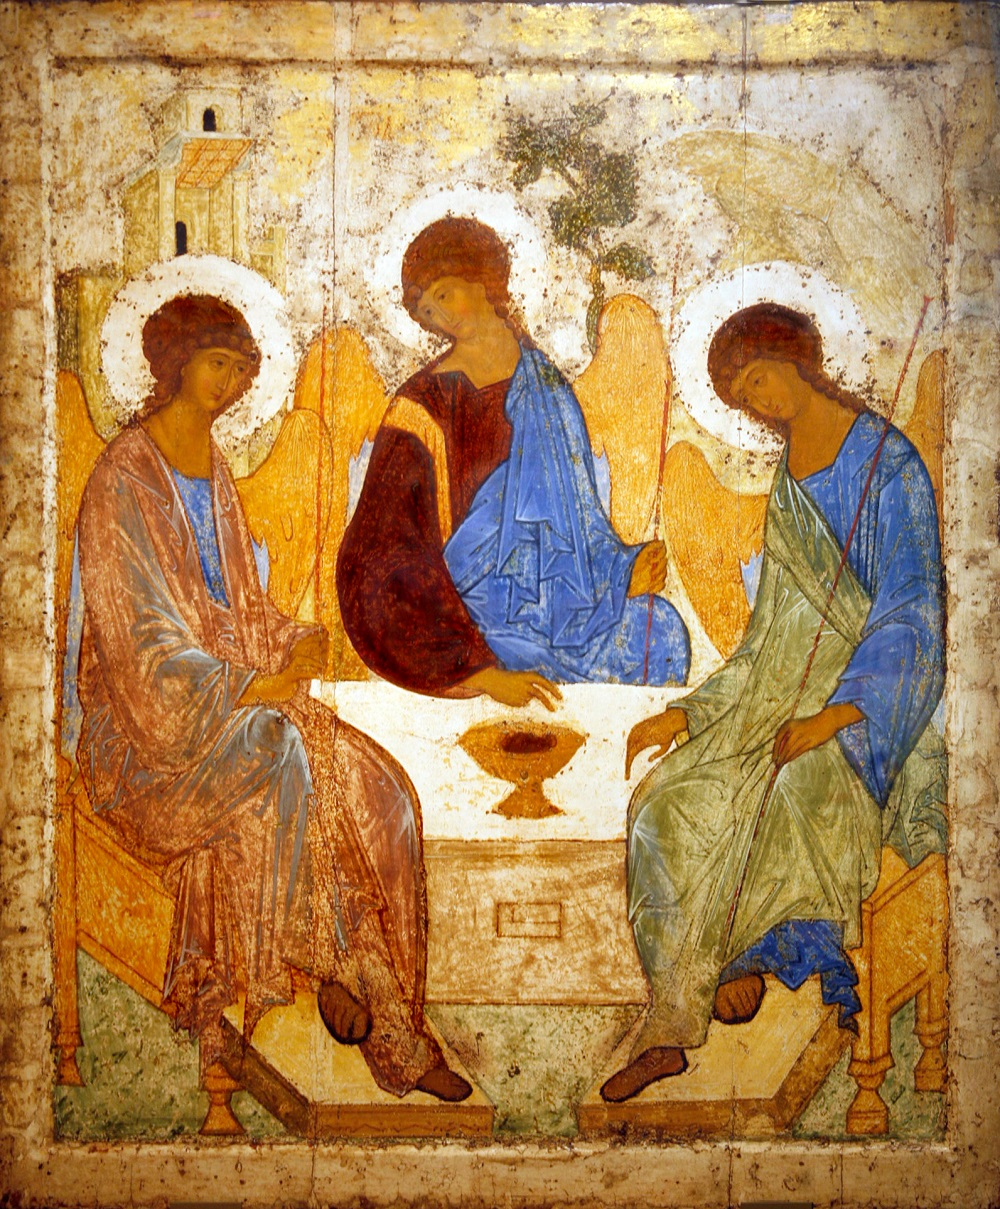 "But his fame rests mostly on his restoration work. Were it not for him, we would probably have lost Andrei Rublev's legendary ""Trinity"" icon."